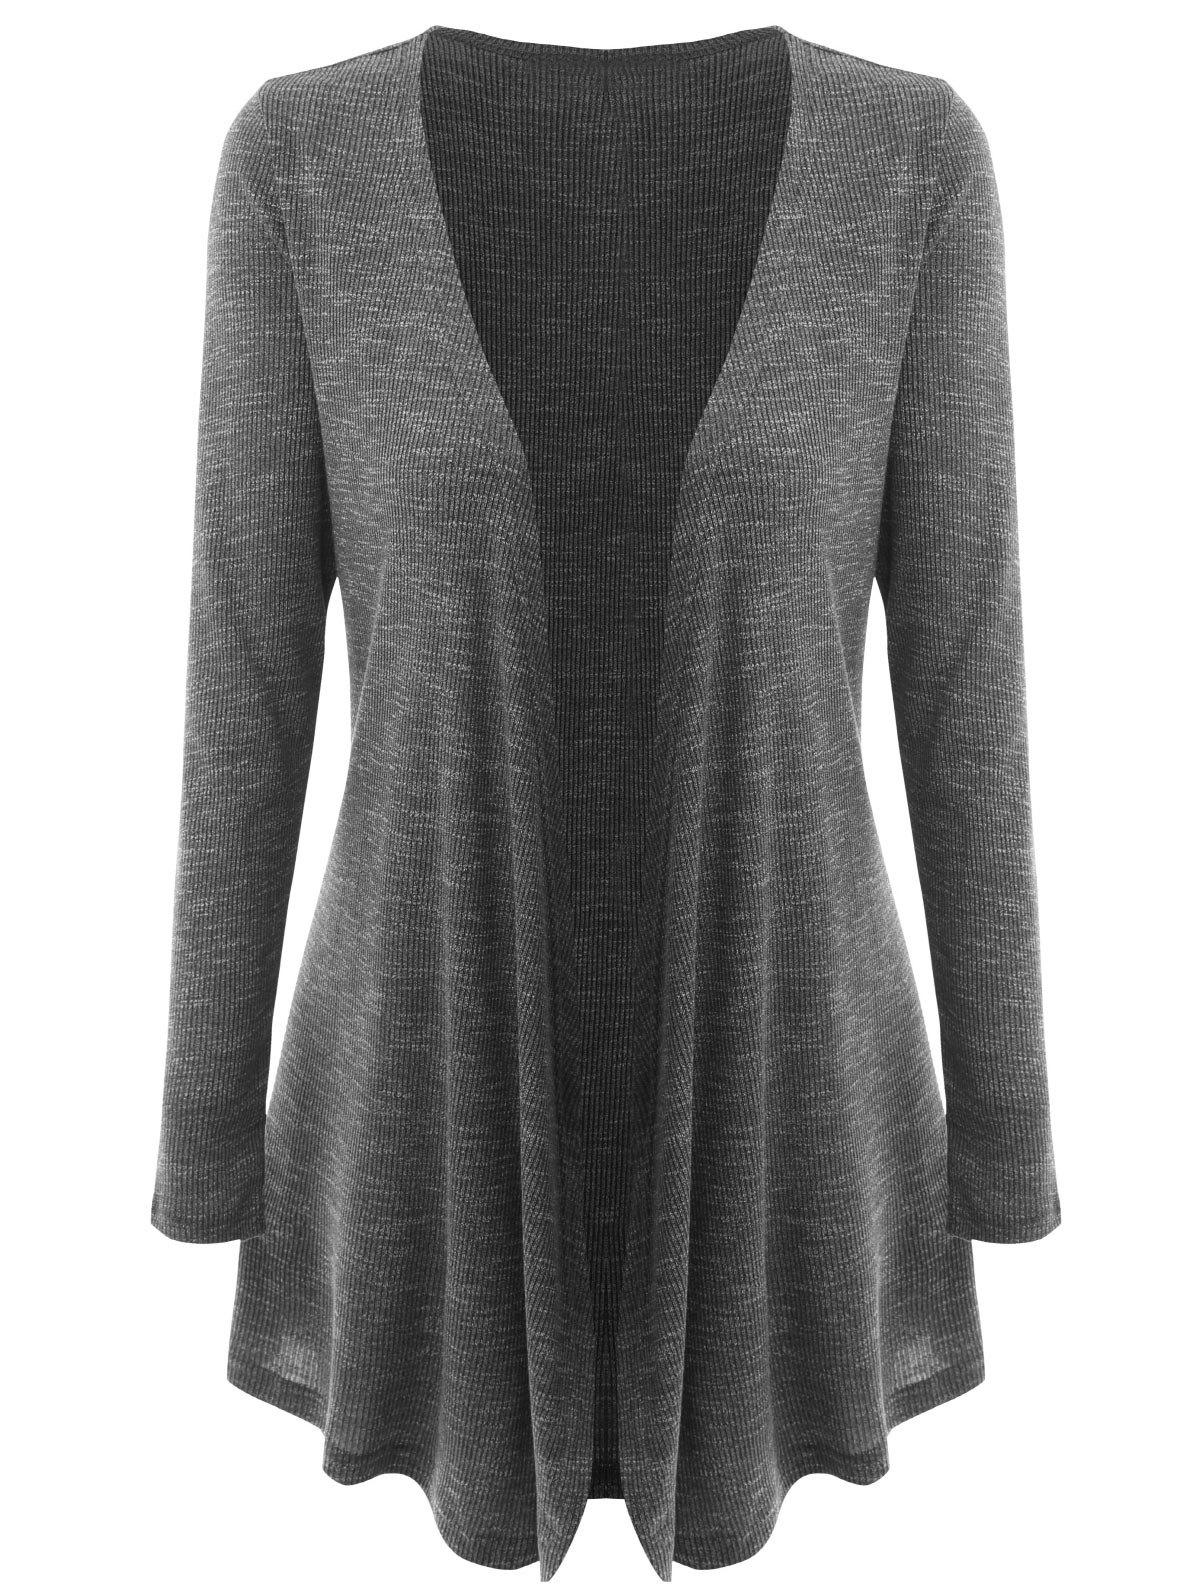 apparel drapes products long collections sleeve grey img drapped tops silo draped sweater